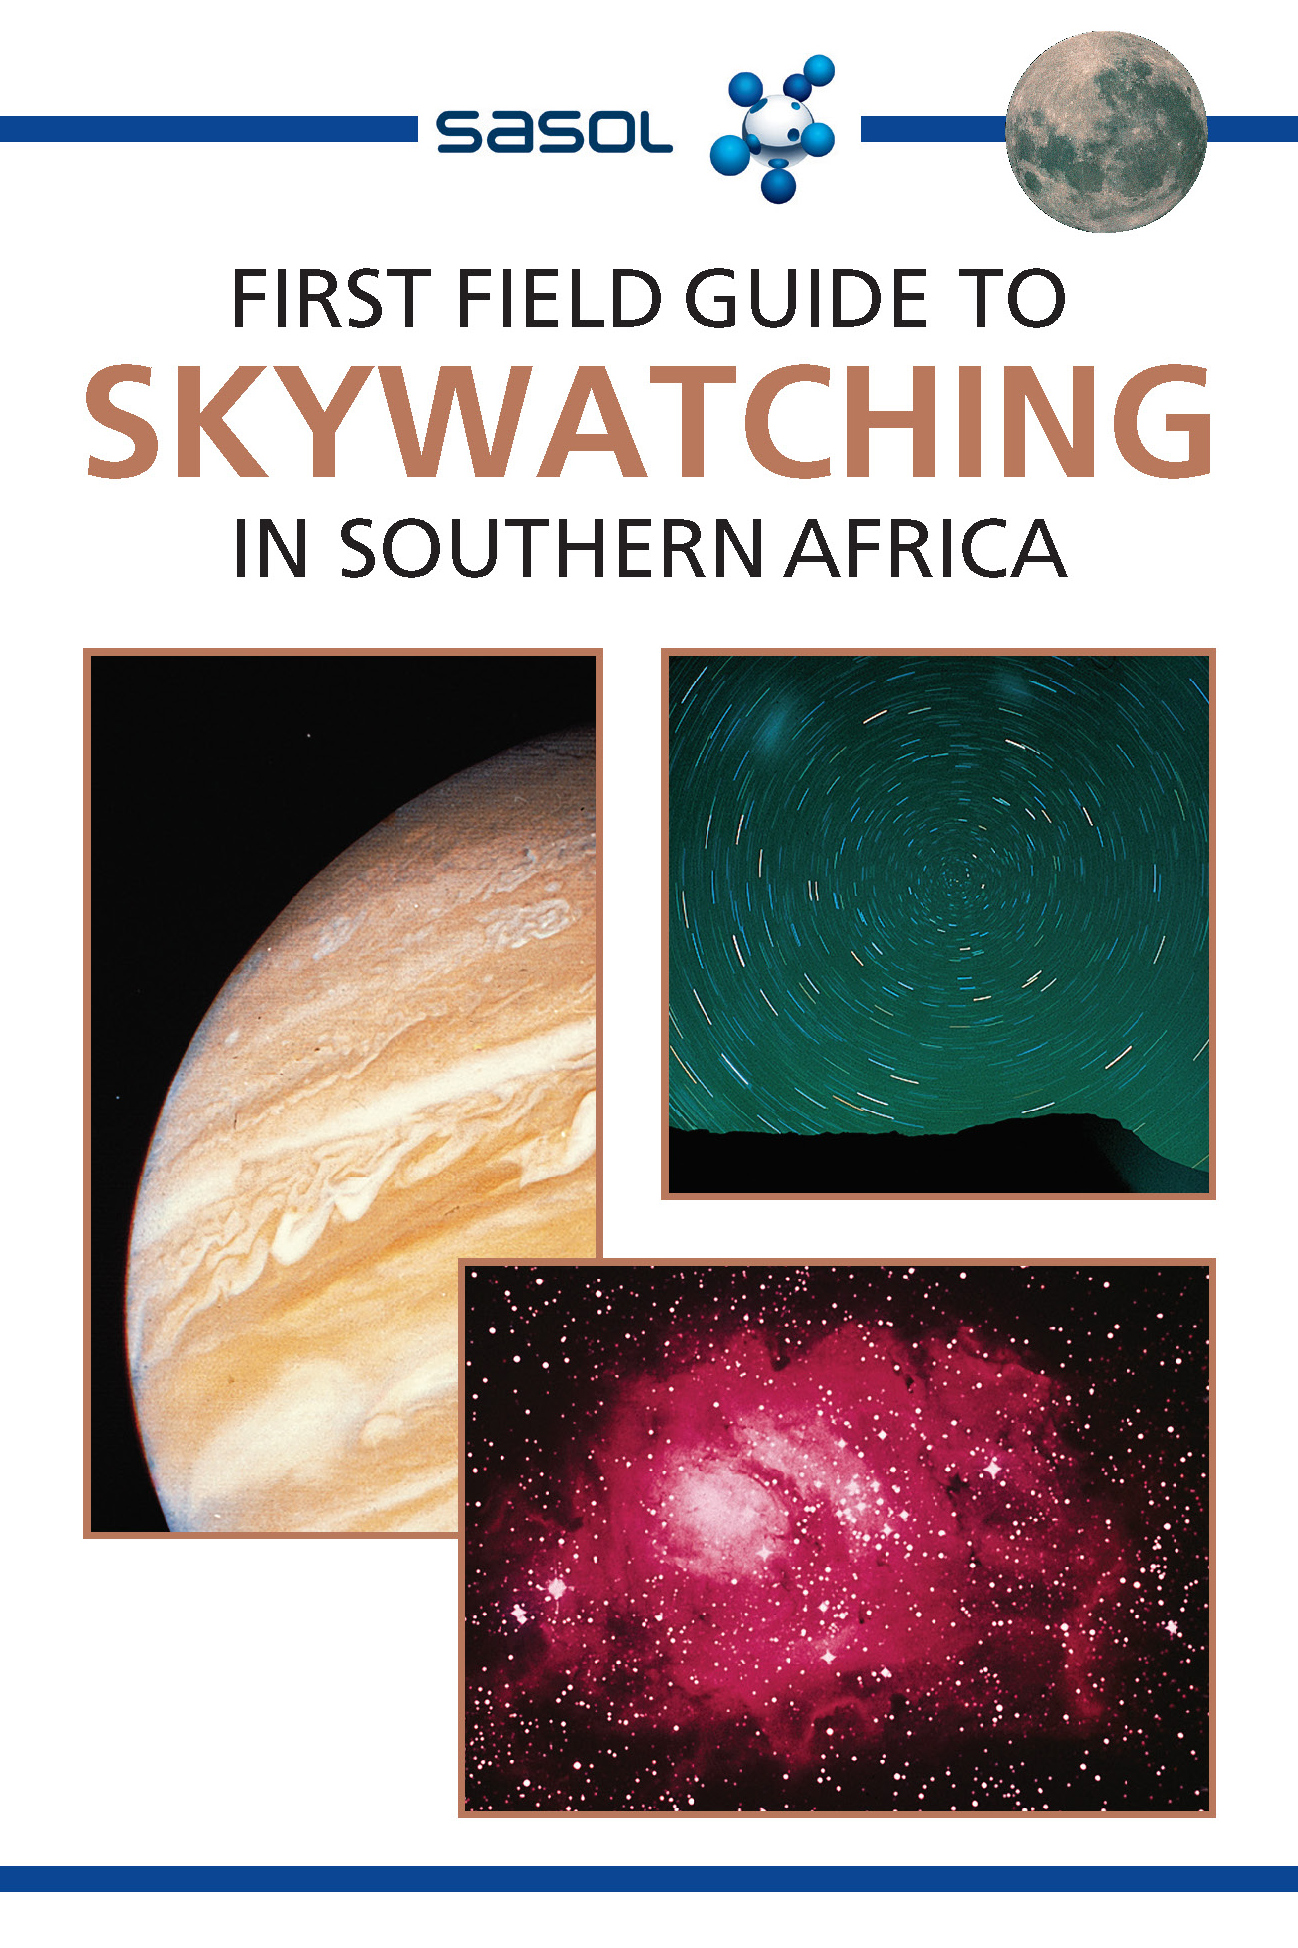 Skywatching in SA